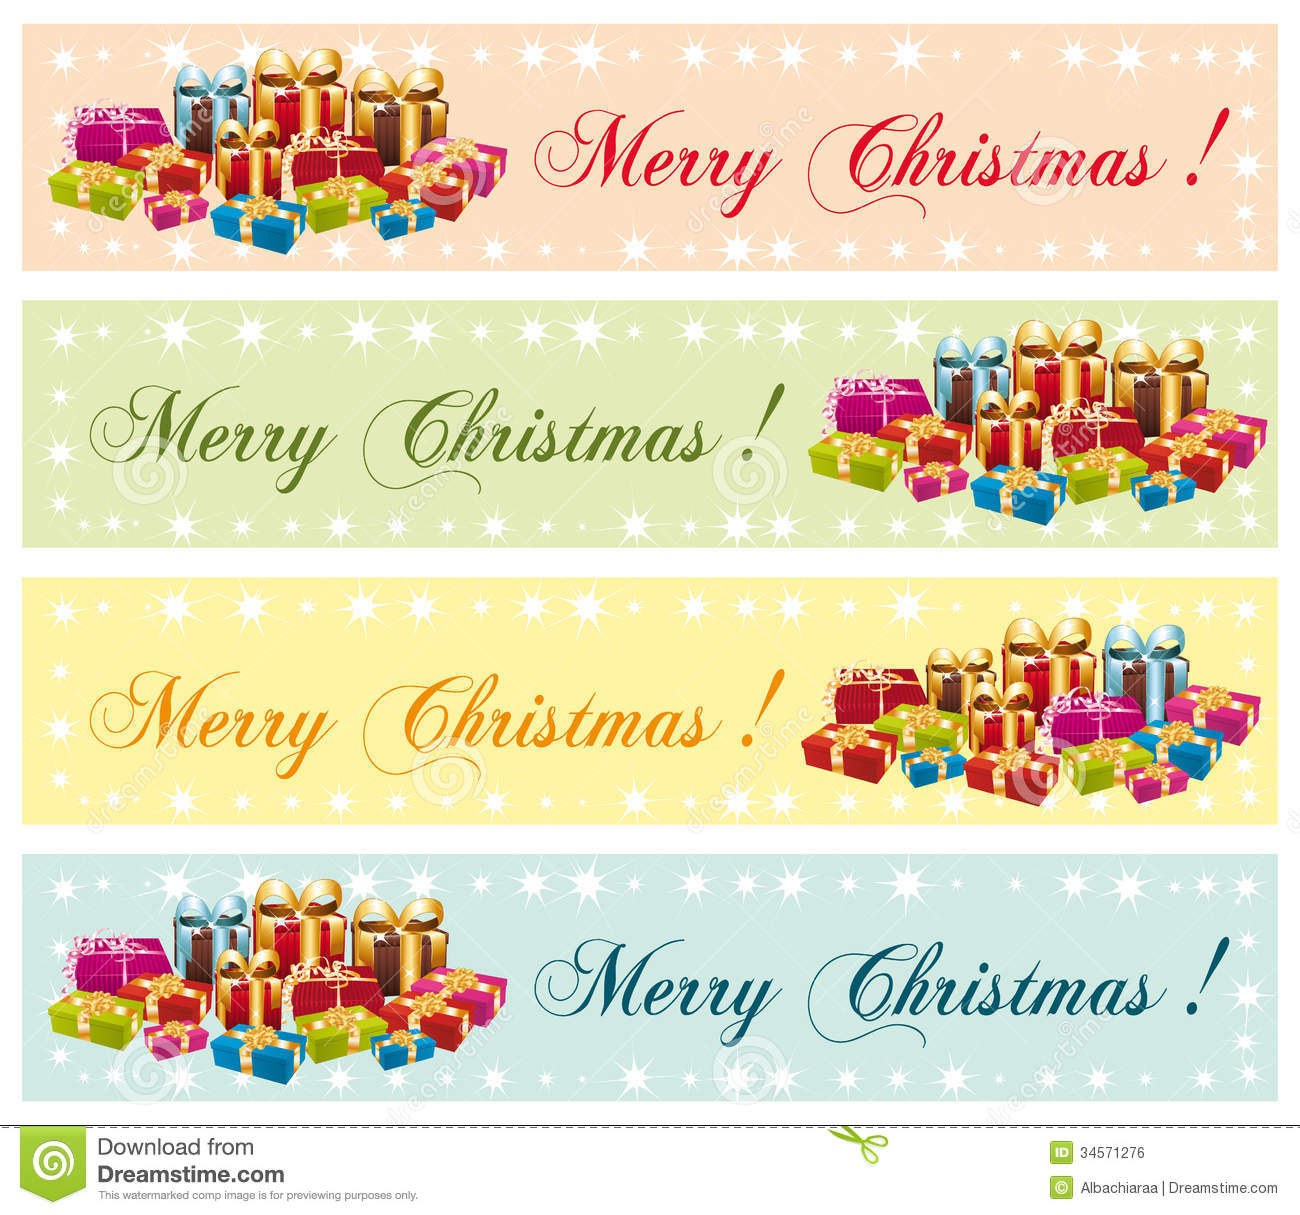 Merry christmas festive commercial banners royalty free stock image